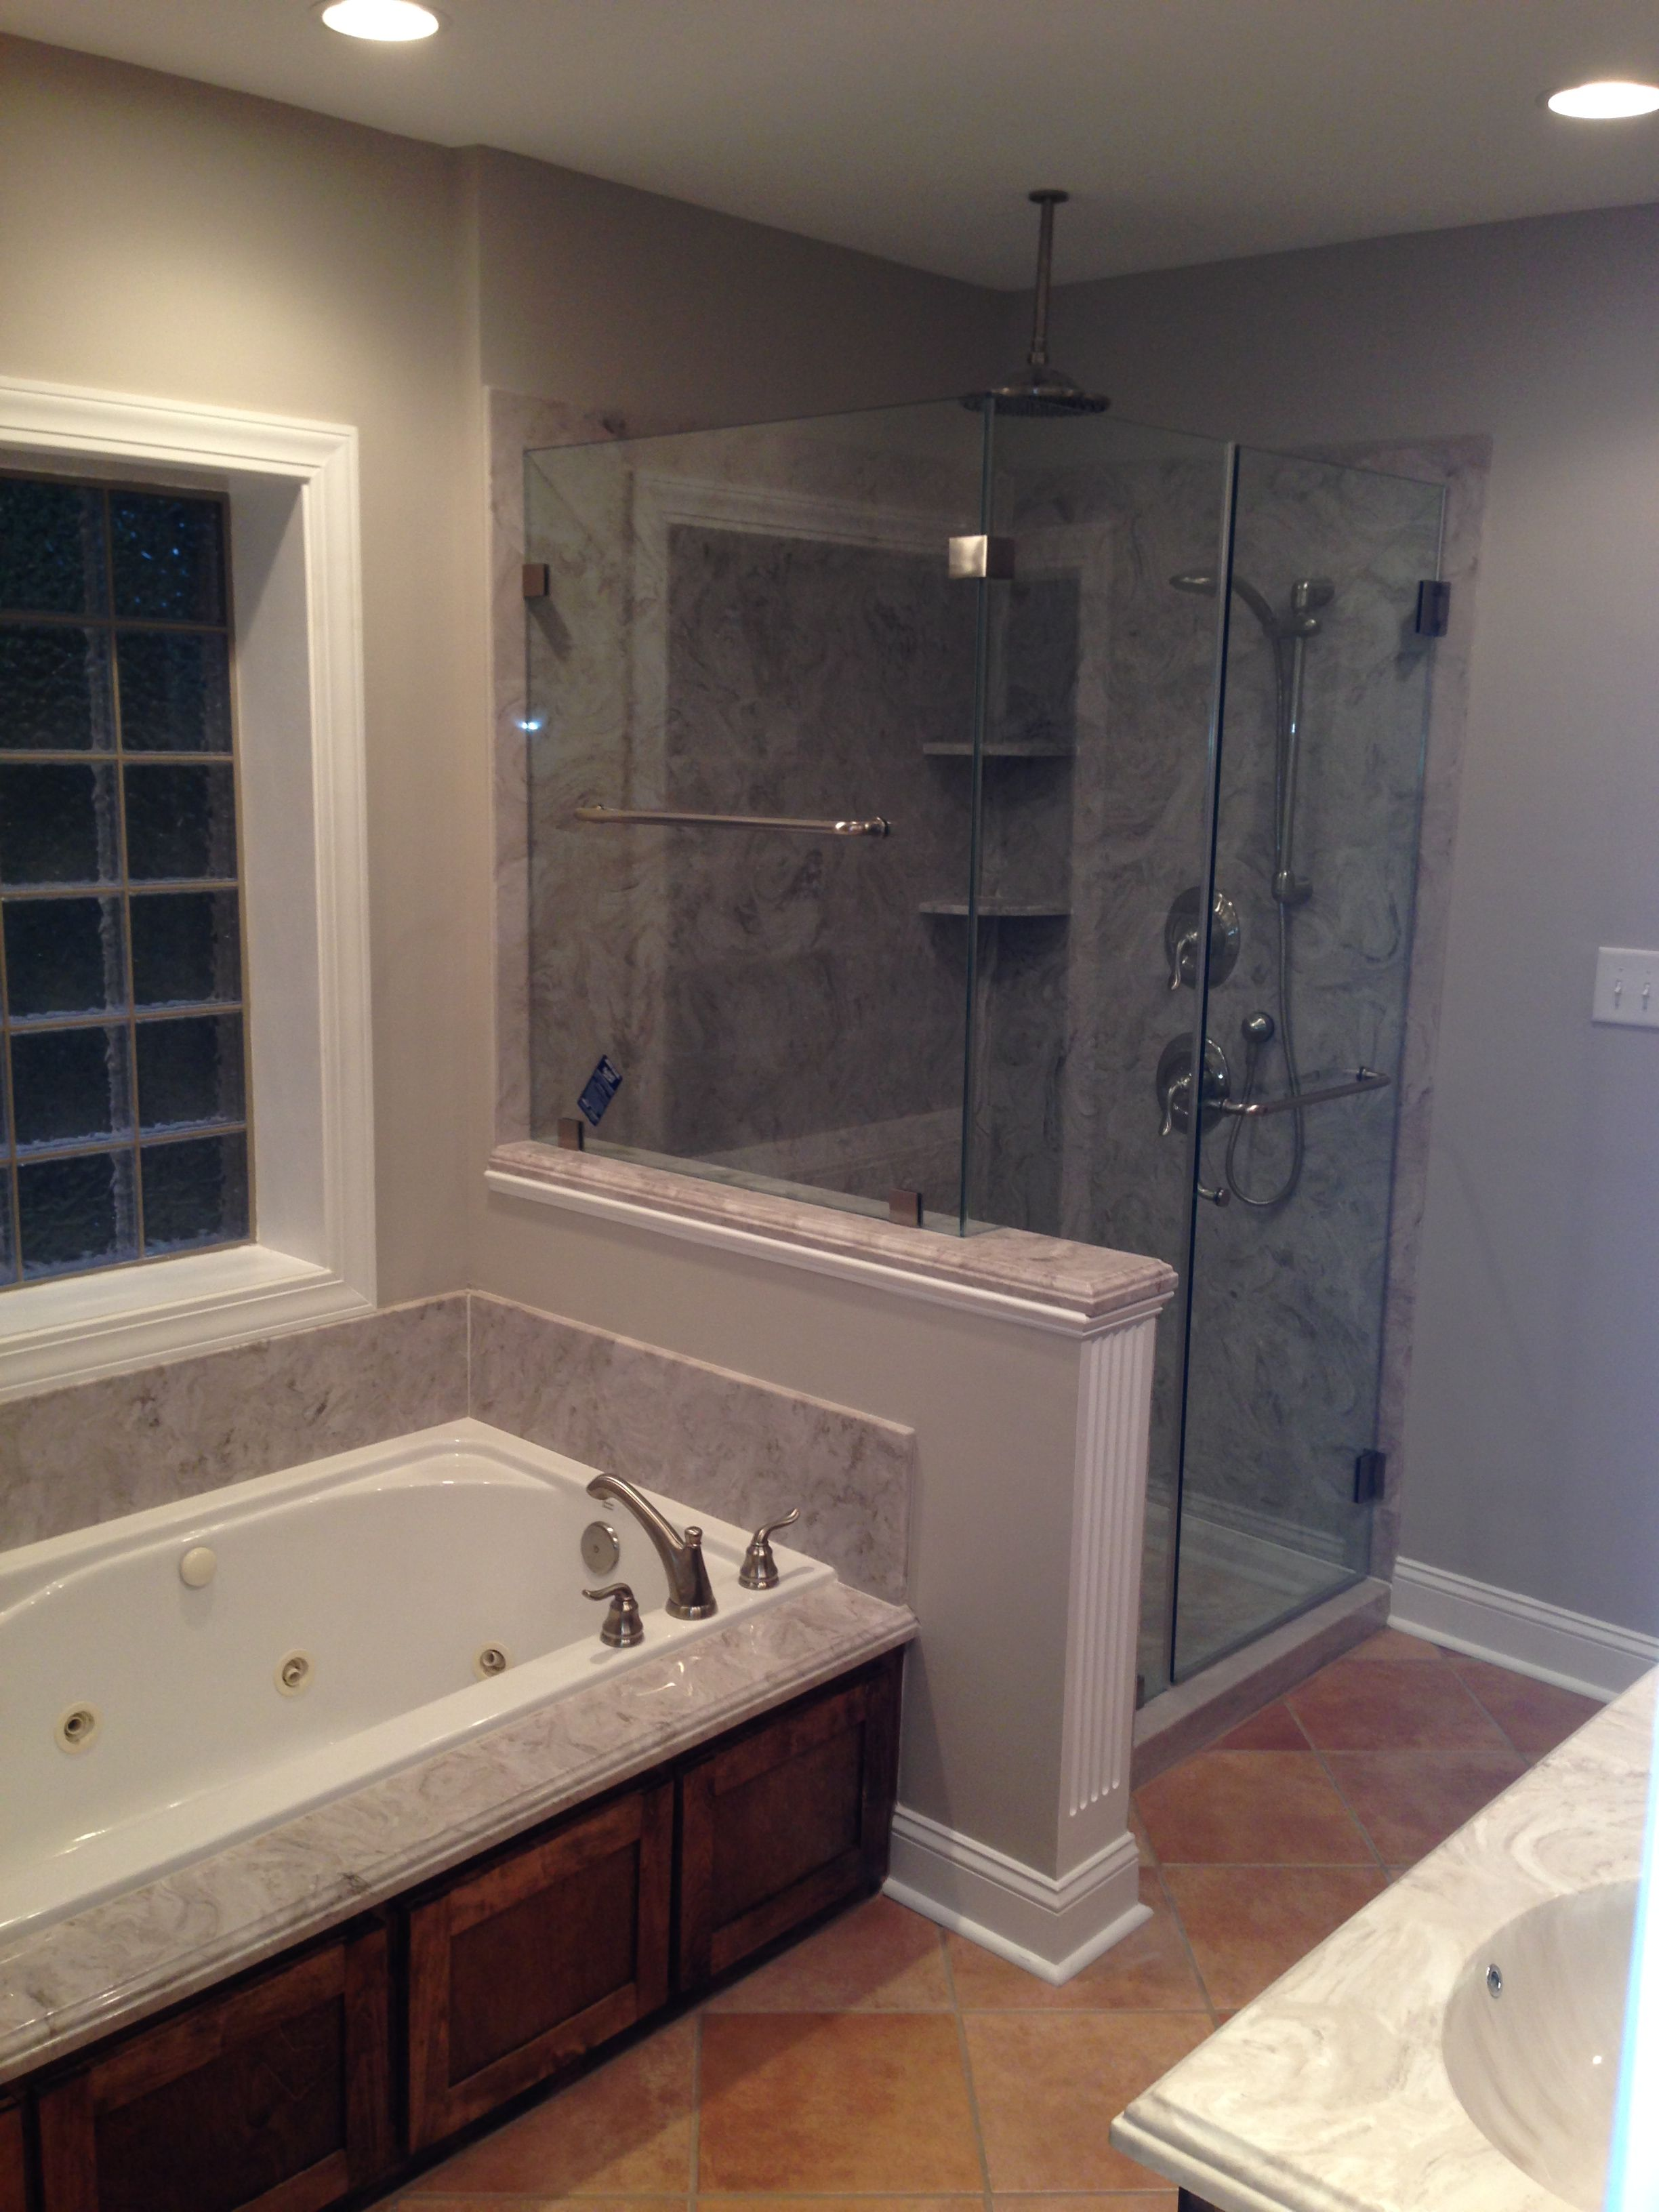 Add Open Concept Idea For A Bathroom Remodel Or New Construction